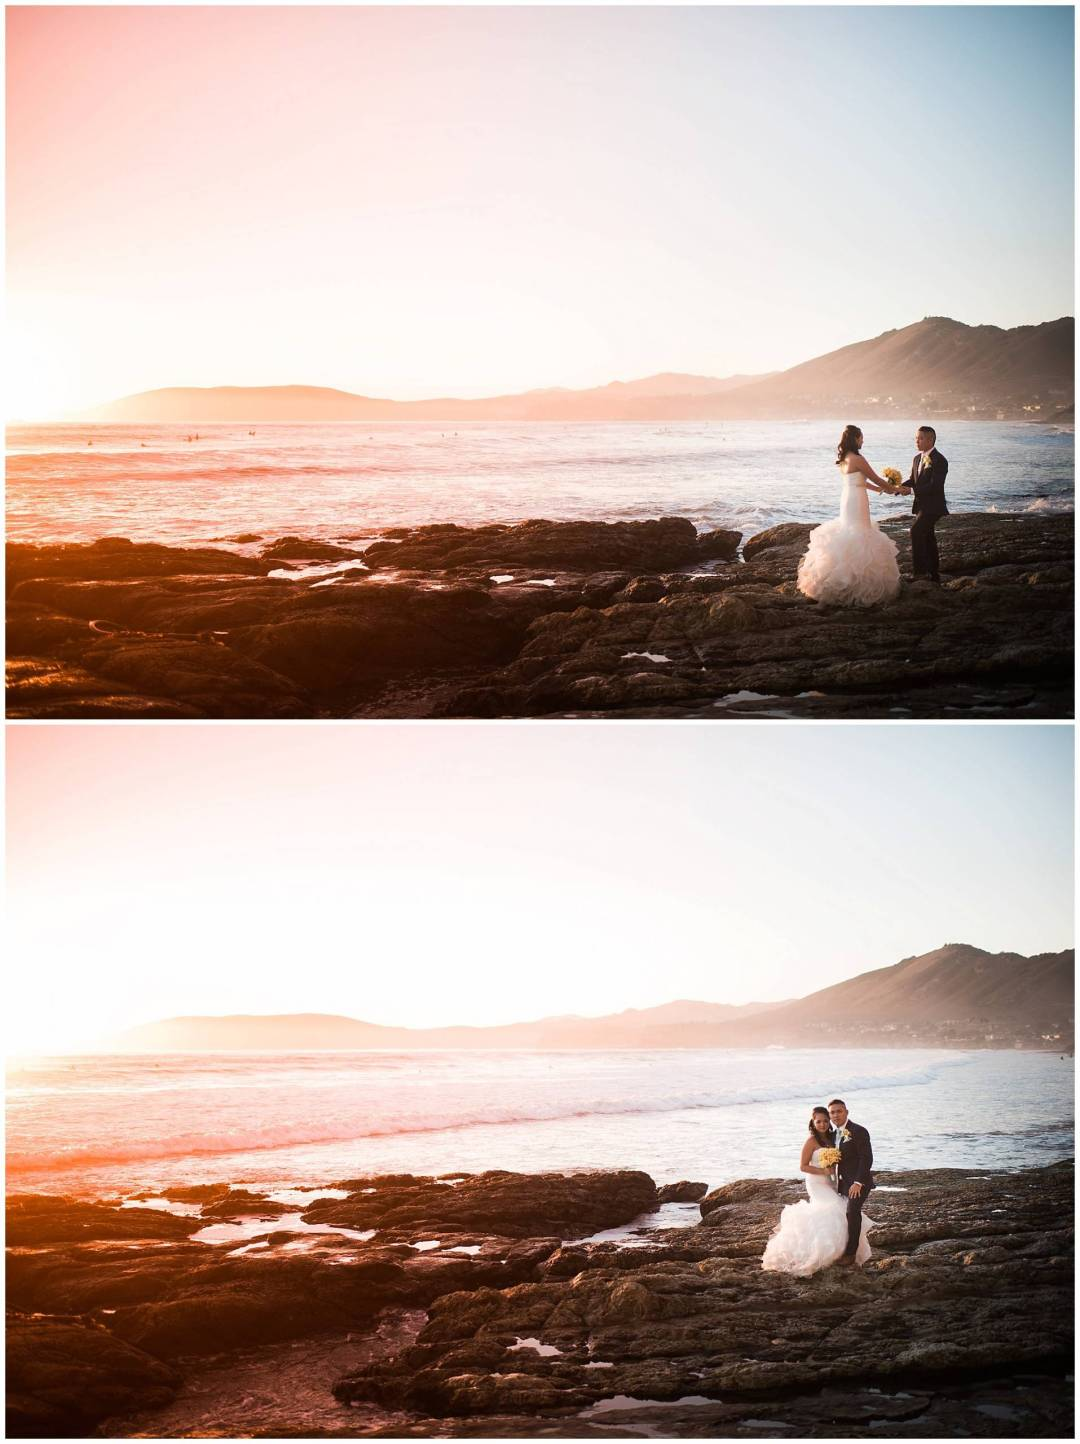 Ha & Allen Wedding Third Element Photography & Cinema Pismo Beach Cliffs Resort Central Coast Hybrid Film Wedding Photographer_0035